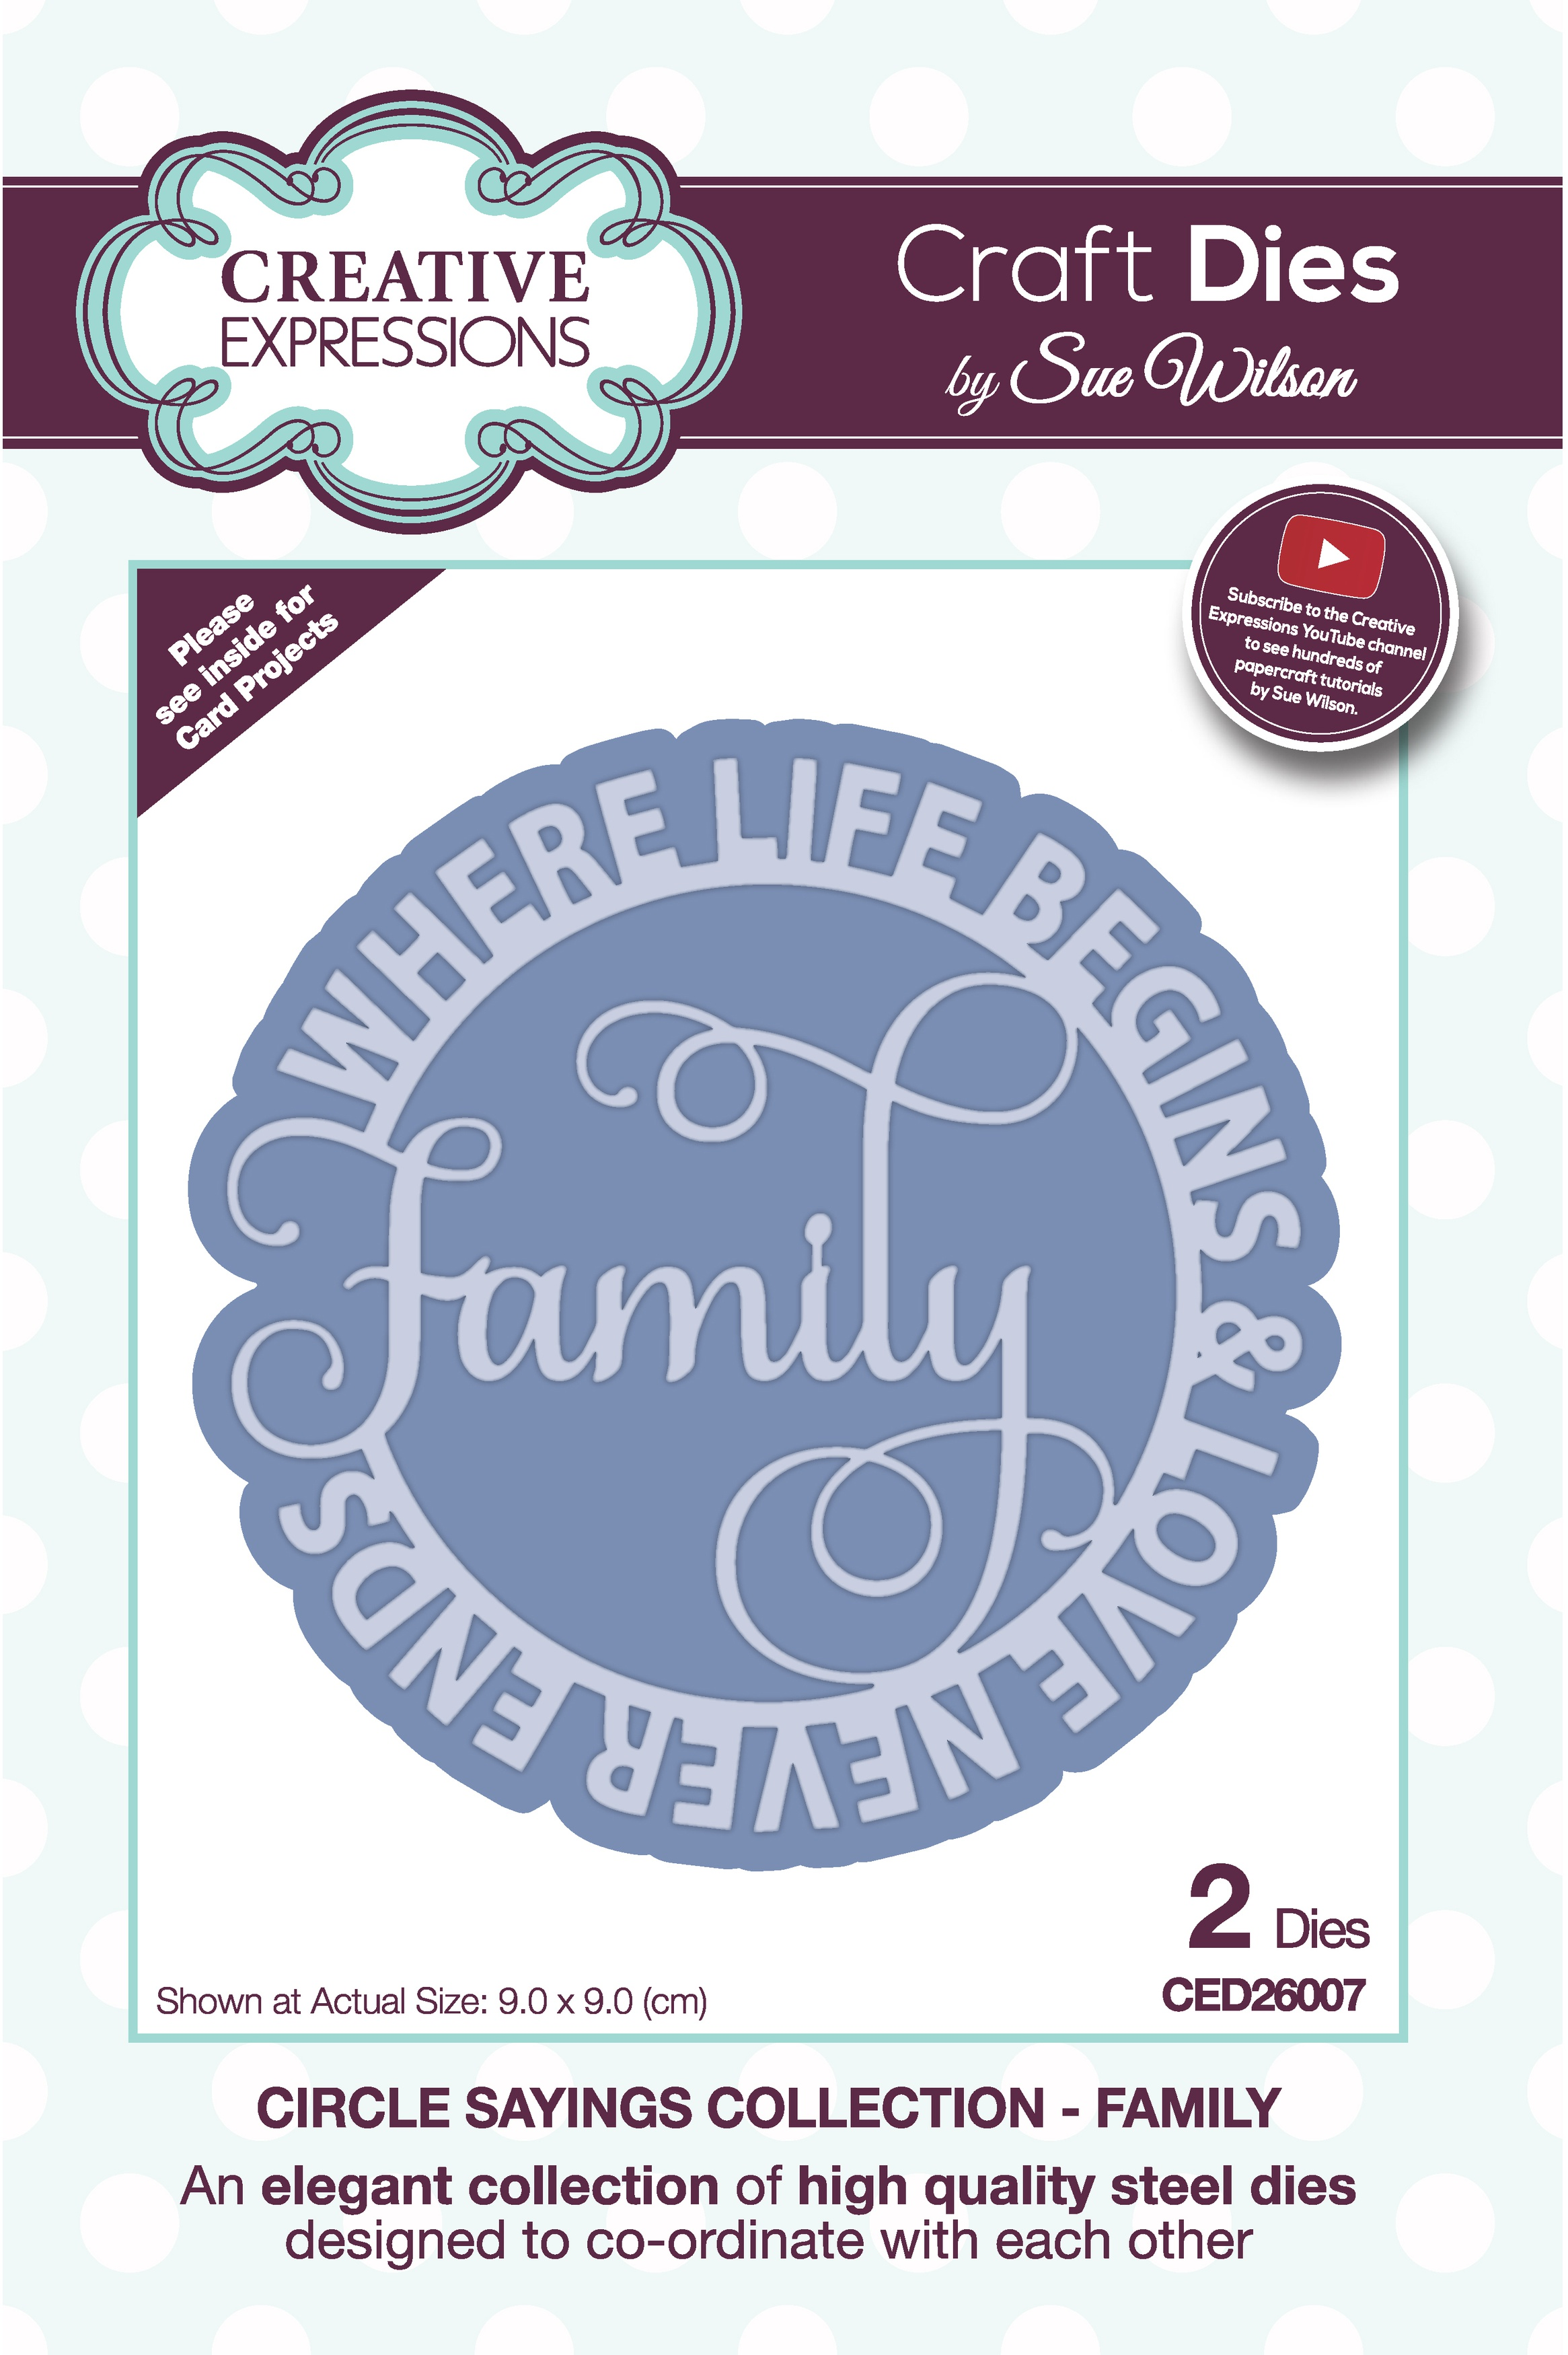 Creative Expressions Craft Dies By Sue Wilson-Circle Sayings- Family